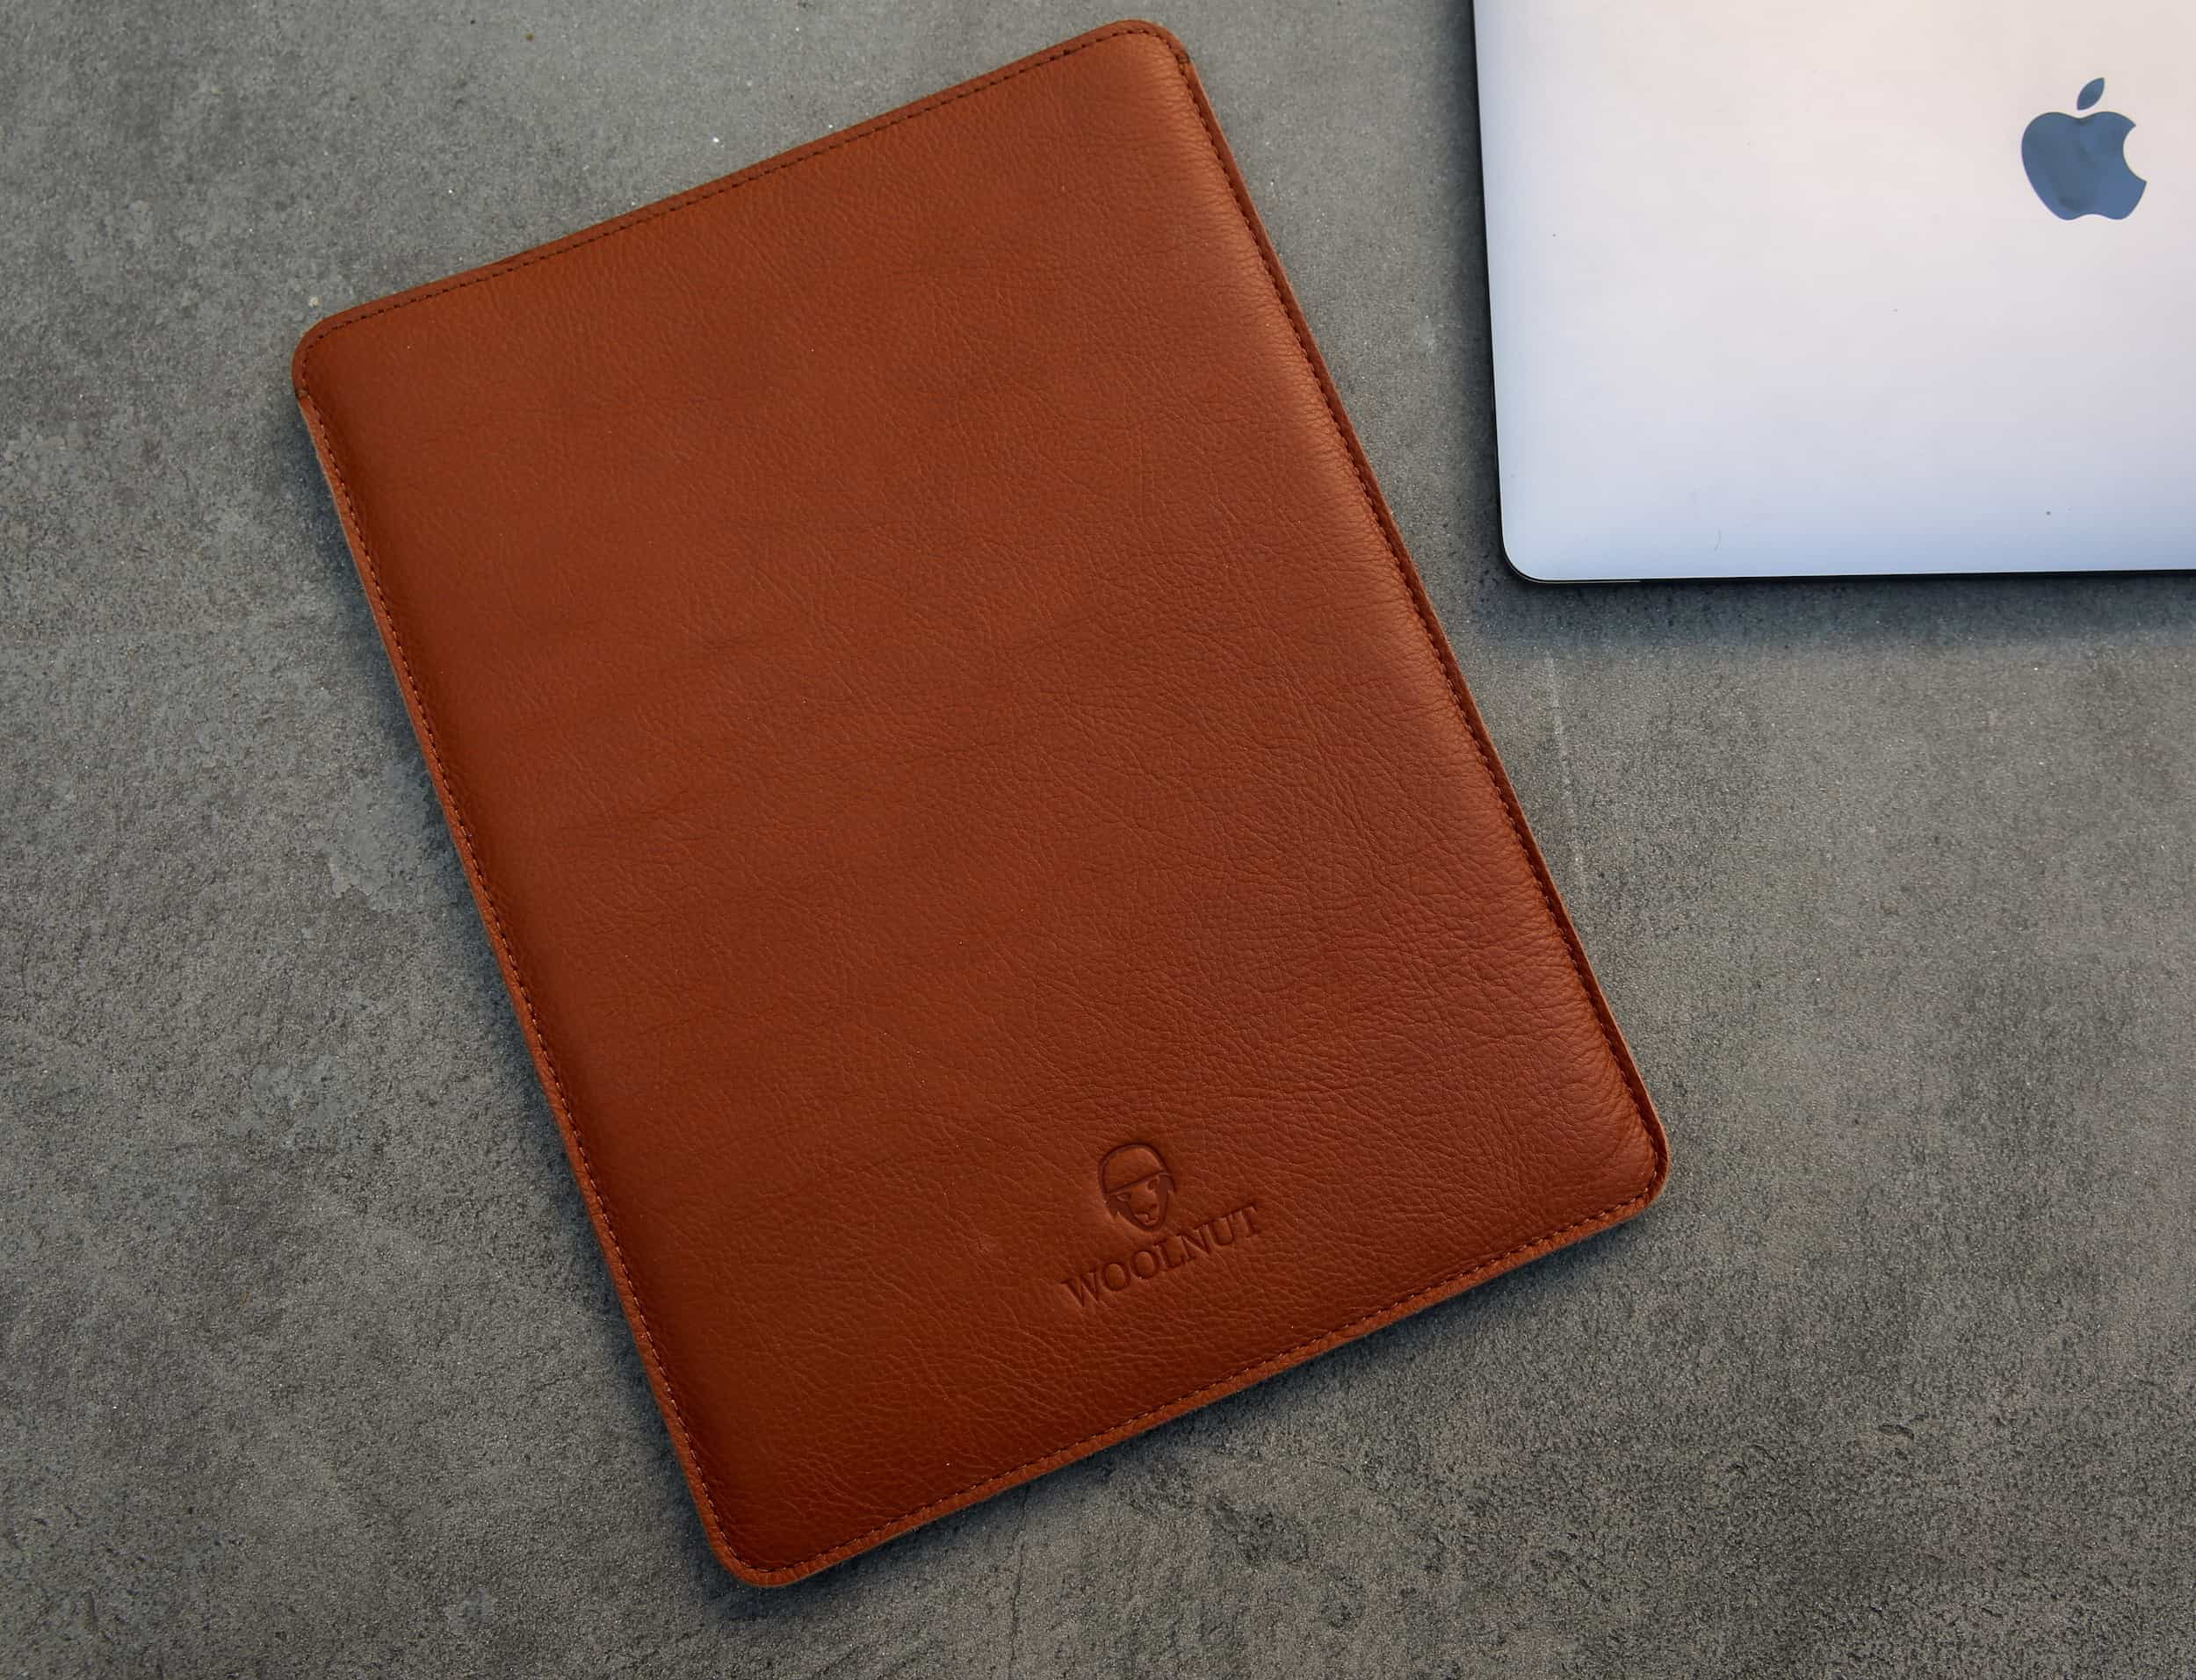 The Woolnut sleeve is pure leather luxury for your MacBook.